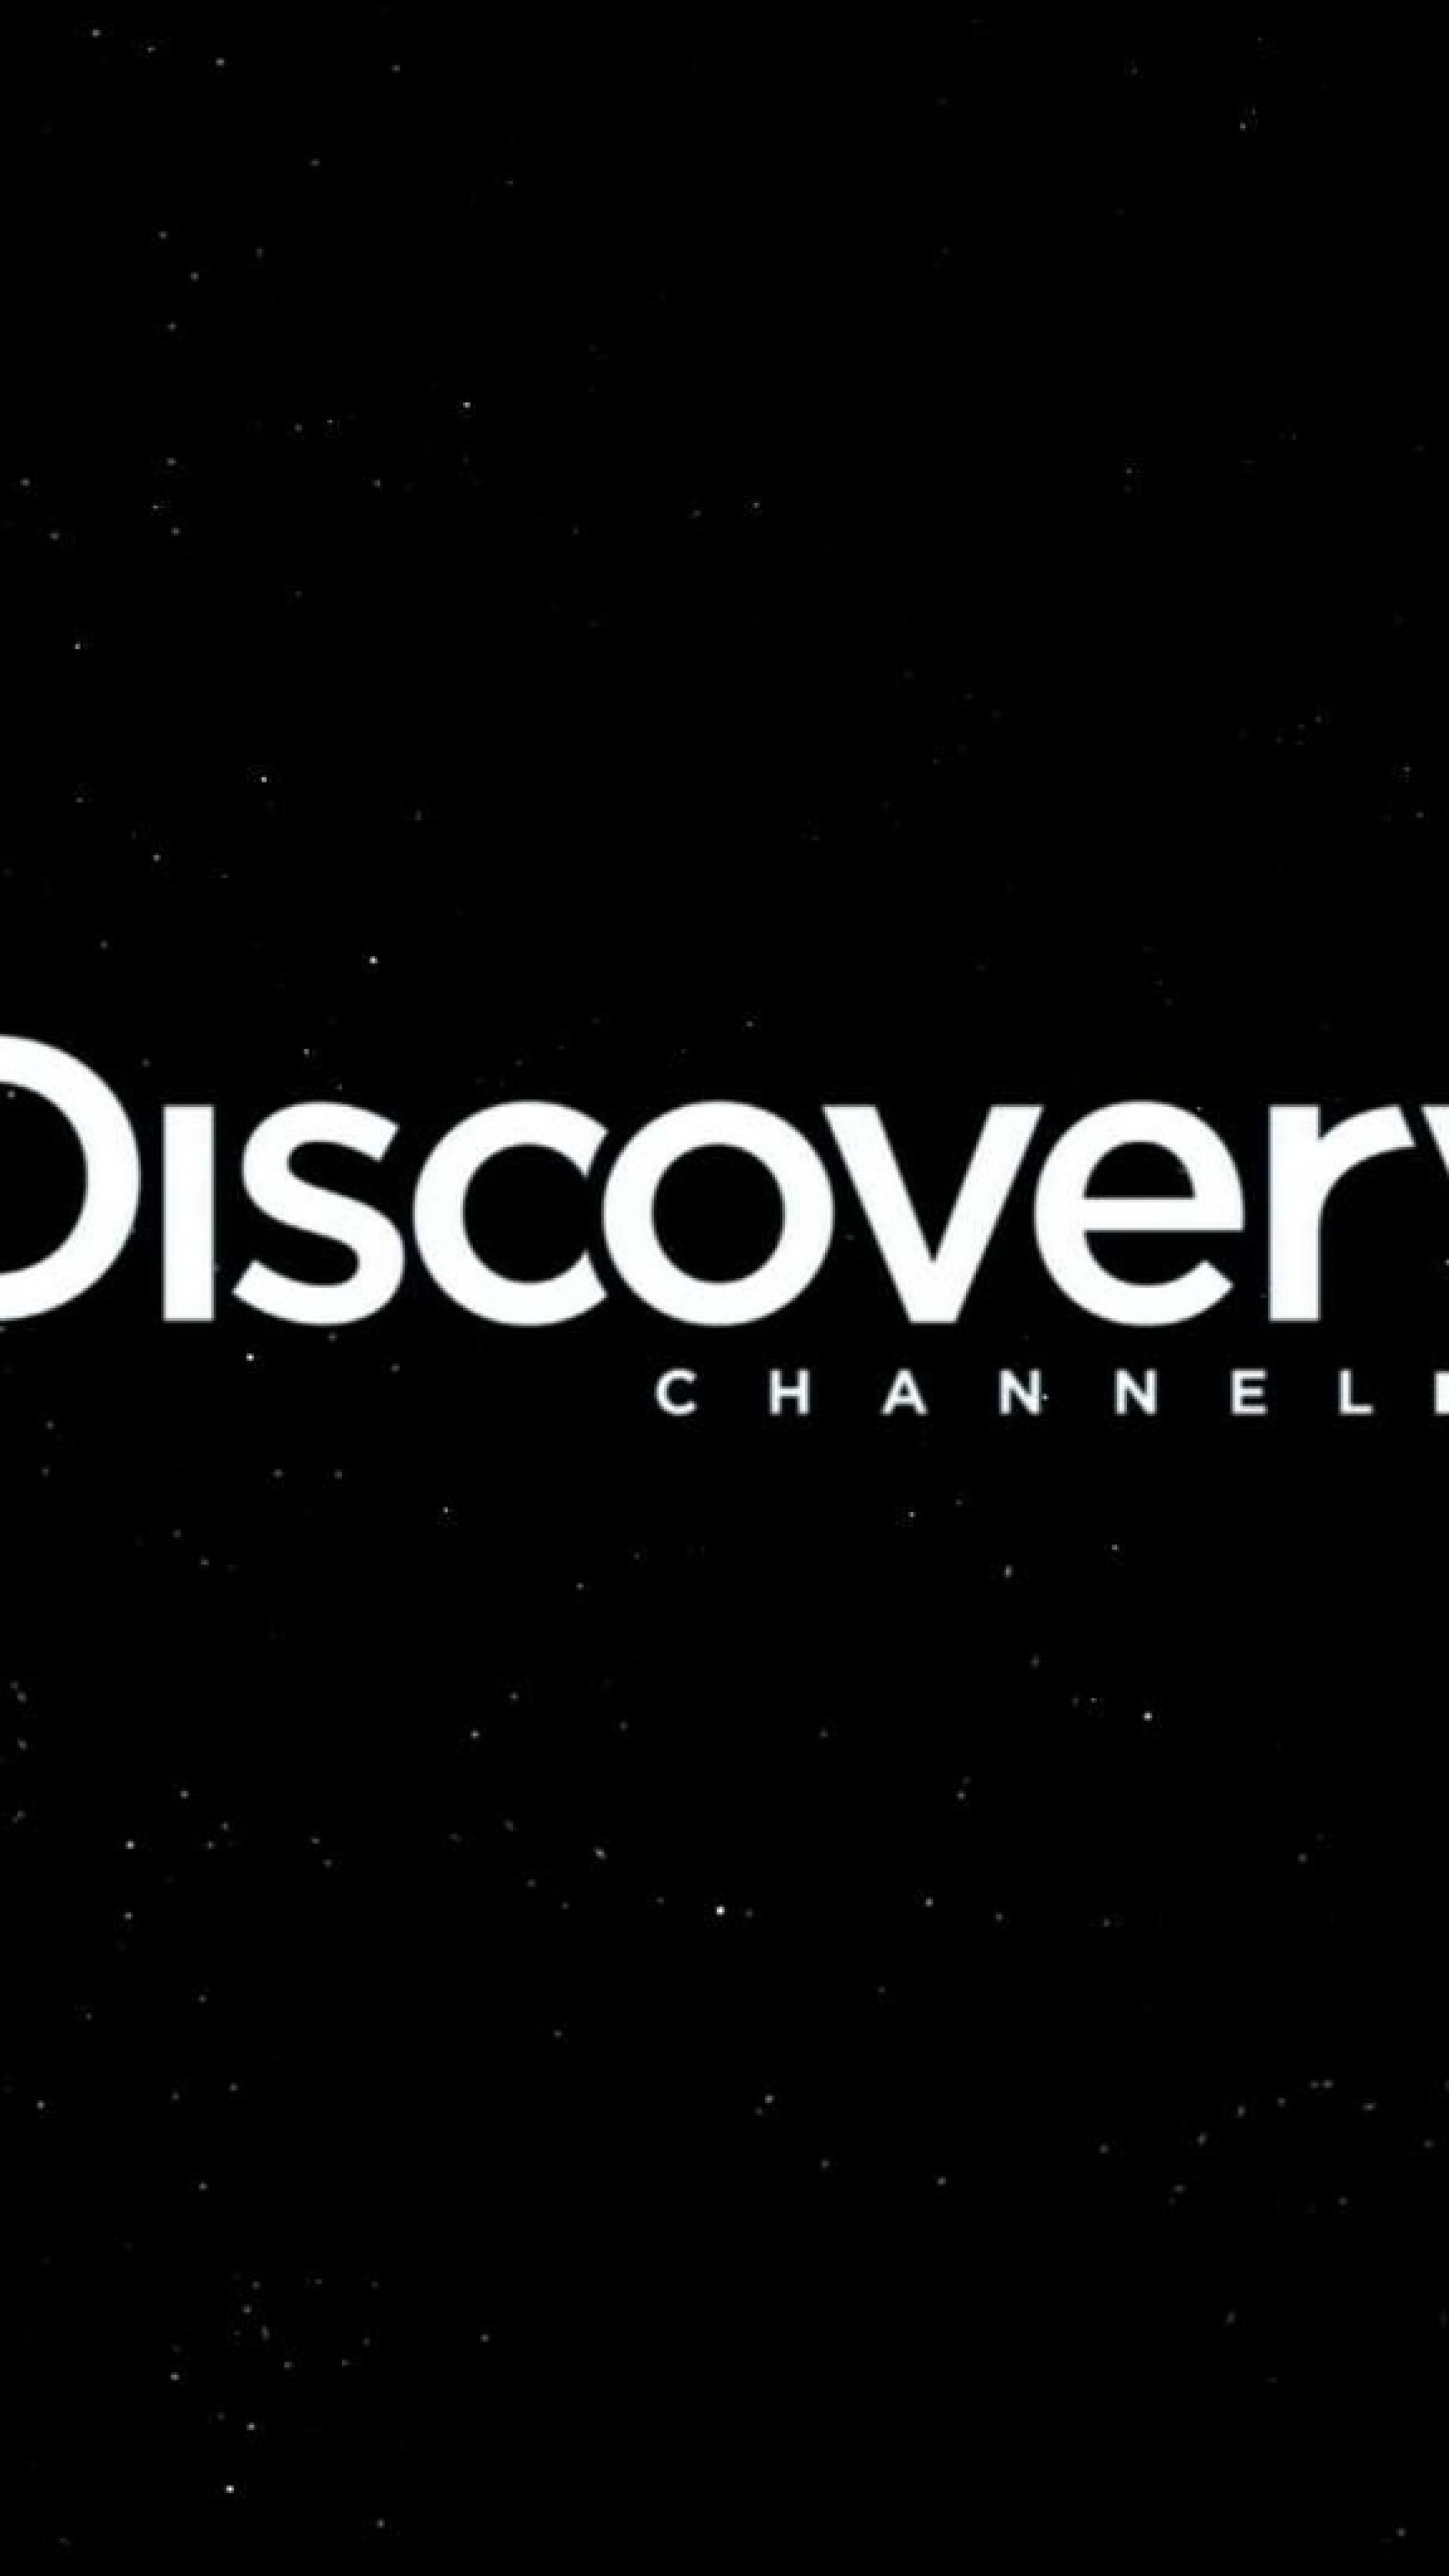 Discovery Channel Wallpapers 1